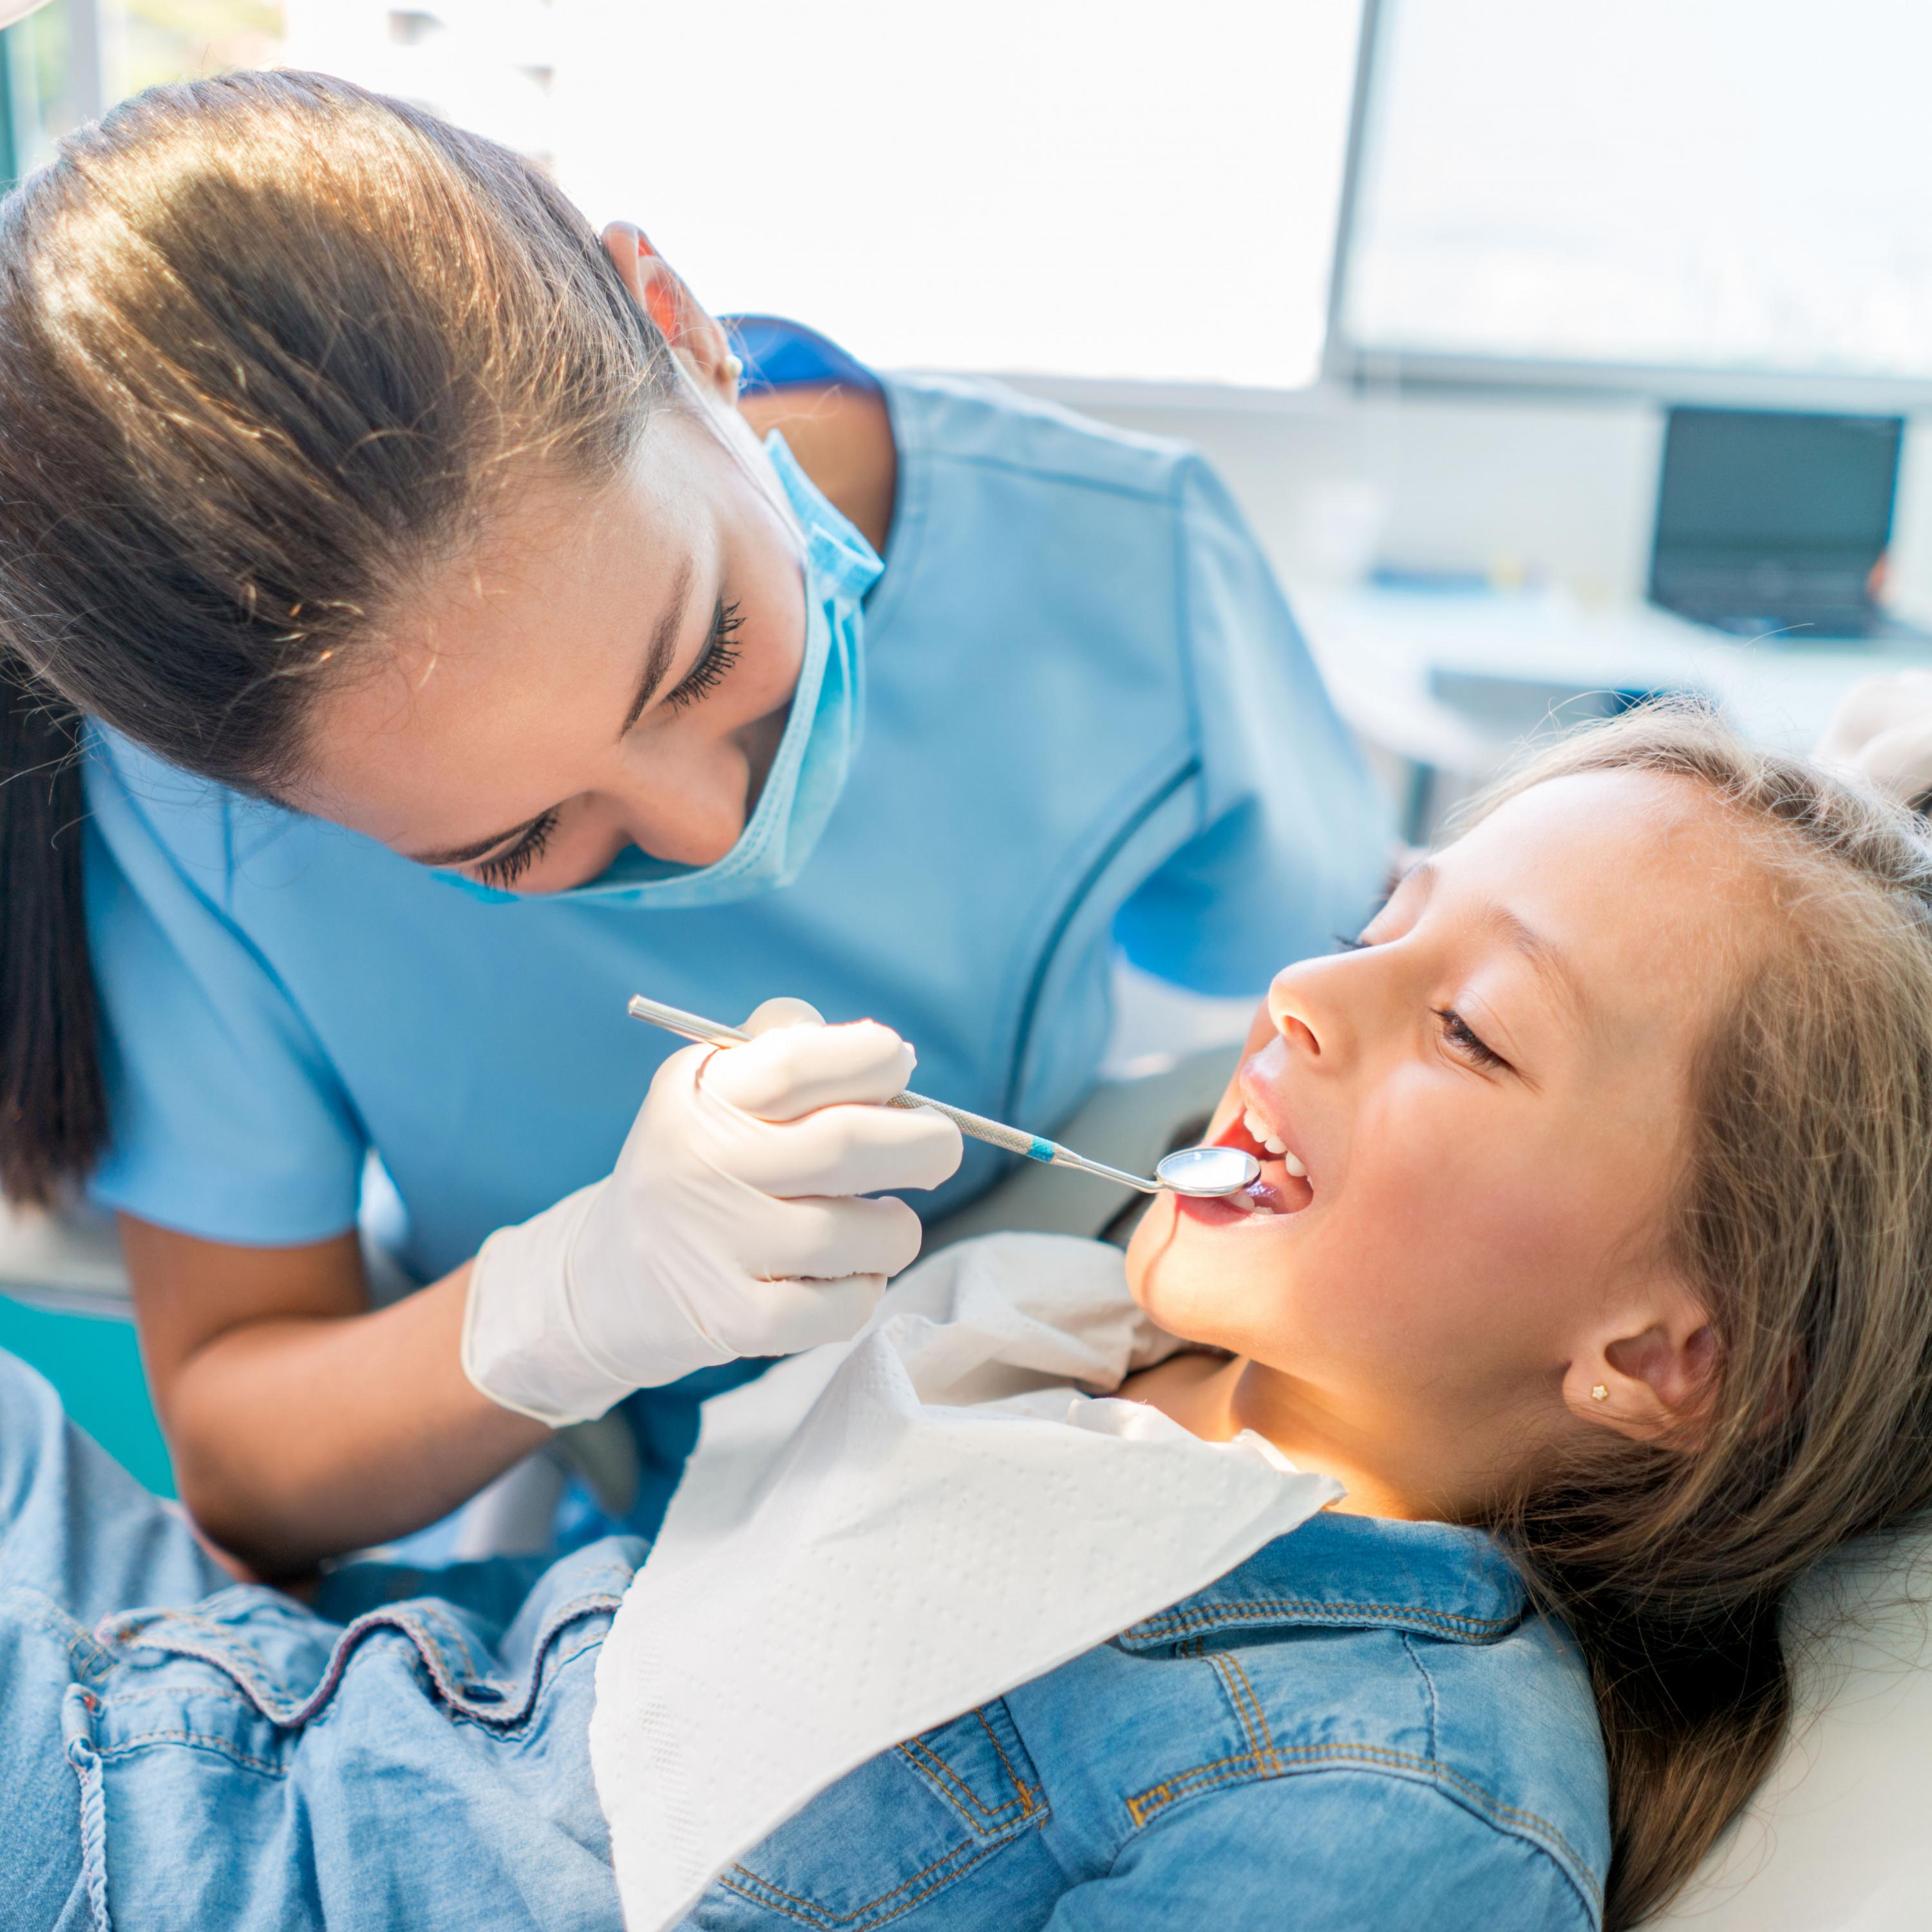 Accurately Evaluating Pediatric Dental Access for Medicaid-insured